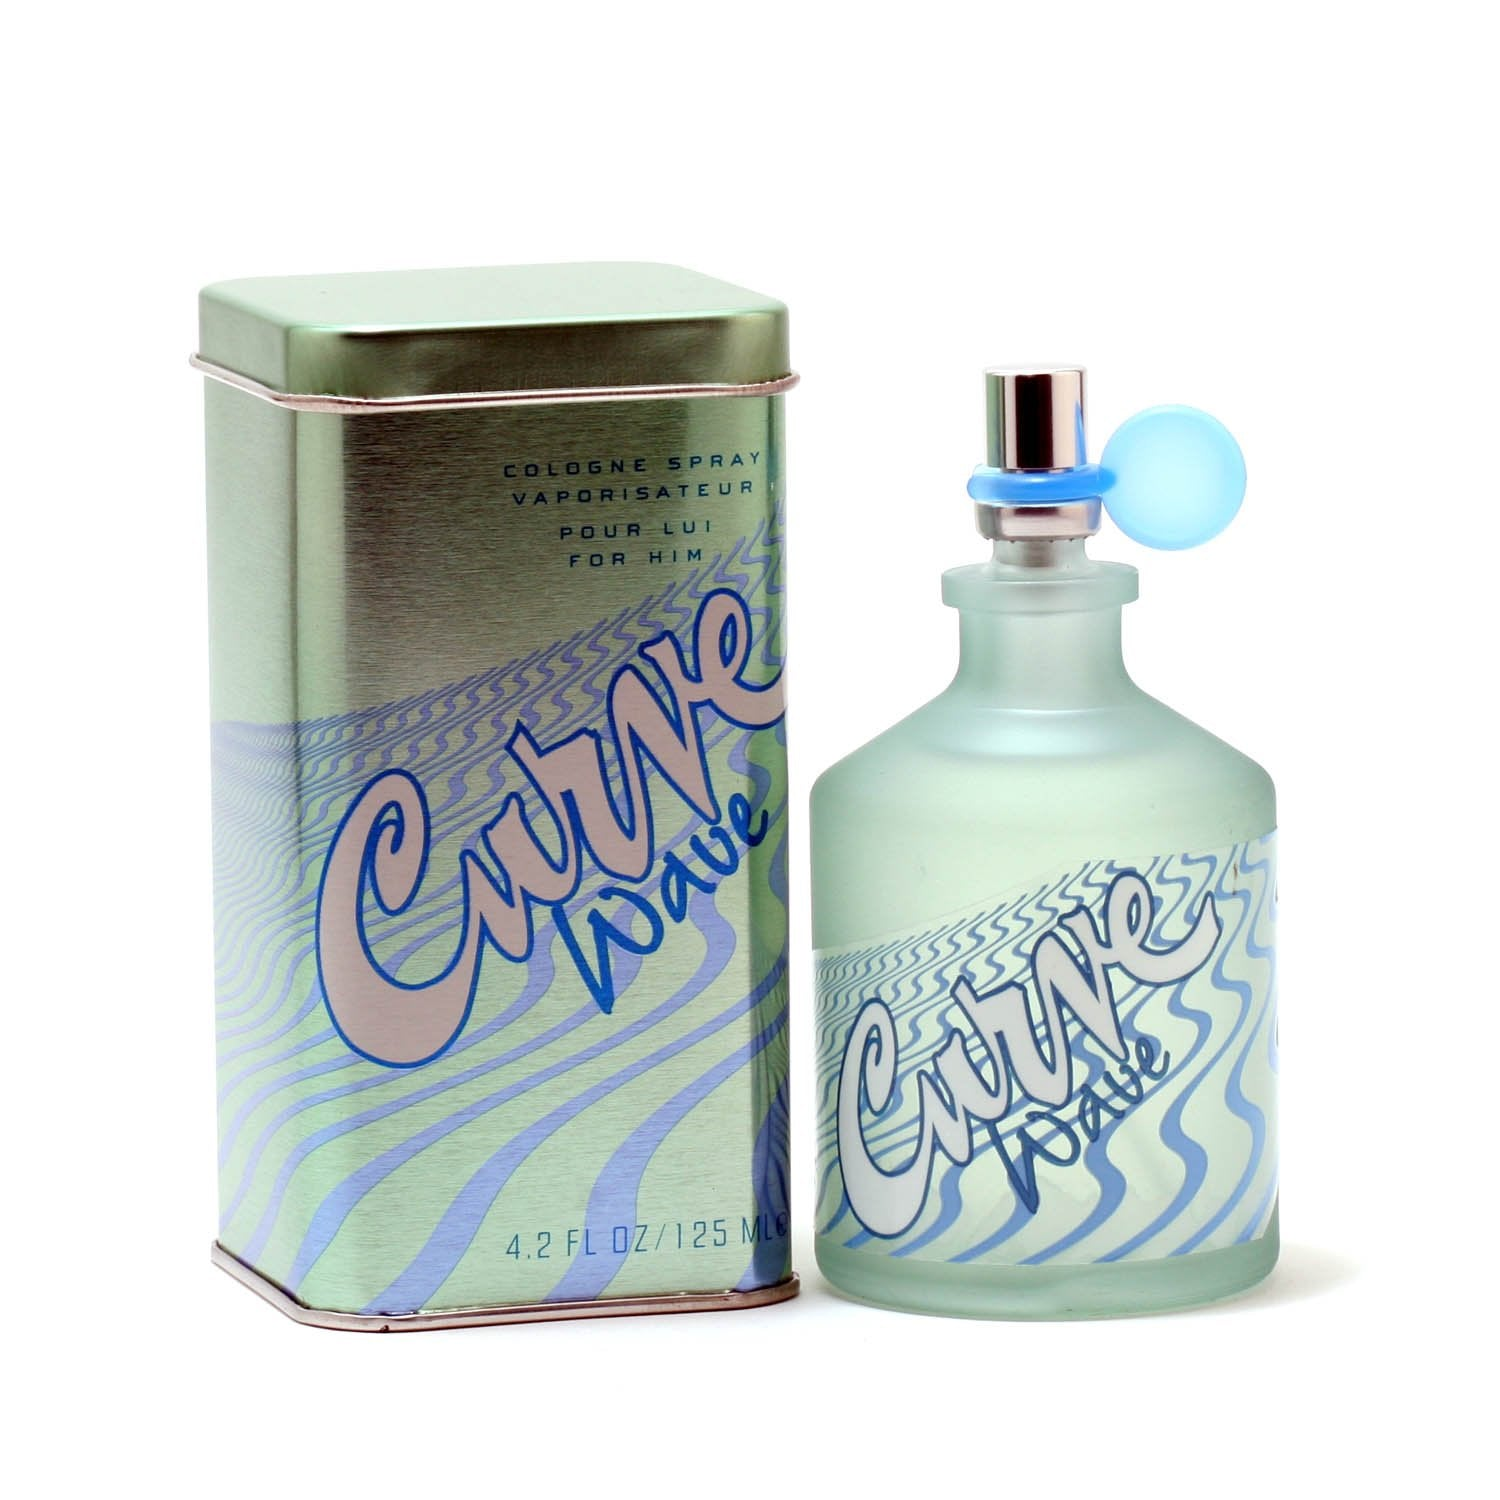 Cologne - CURVE WAVE FOR MEN BY LIZ CLAIBORNE - COLOGNE SPRAY